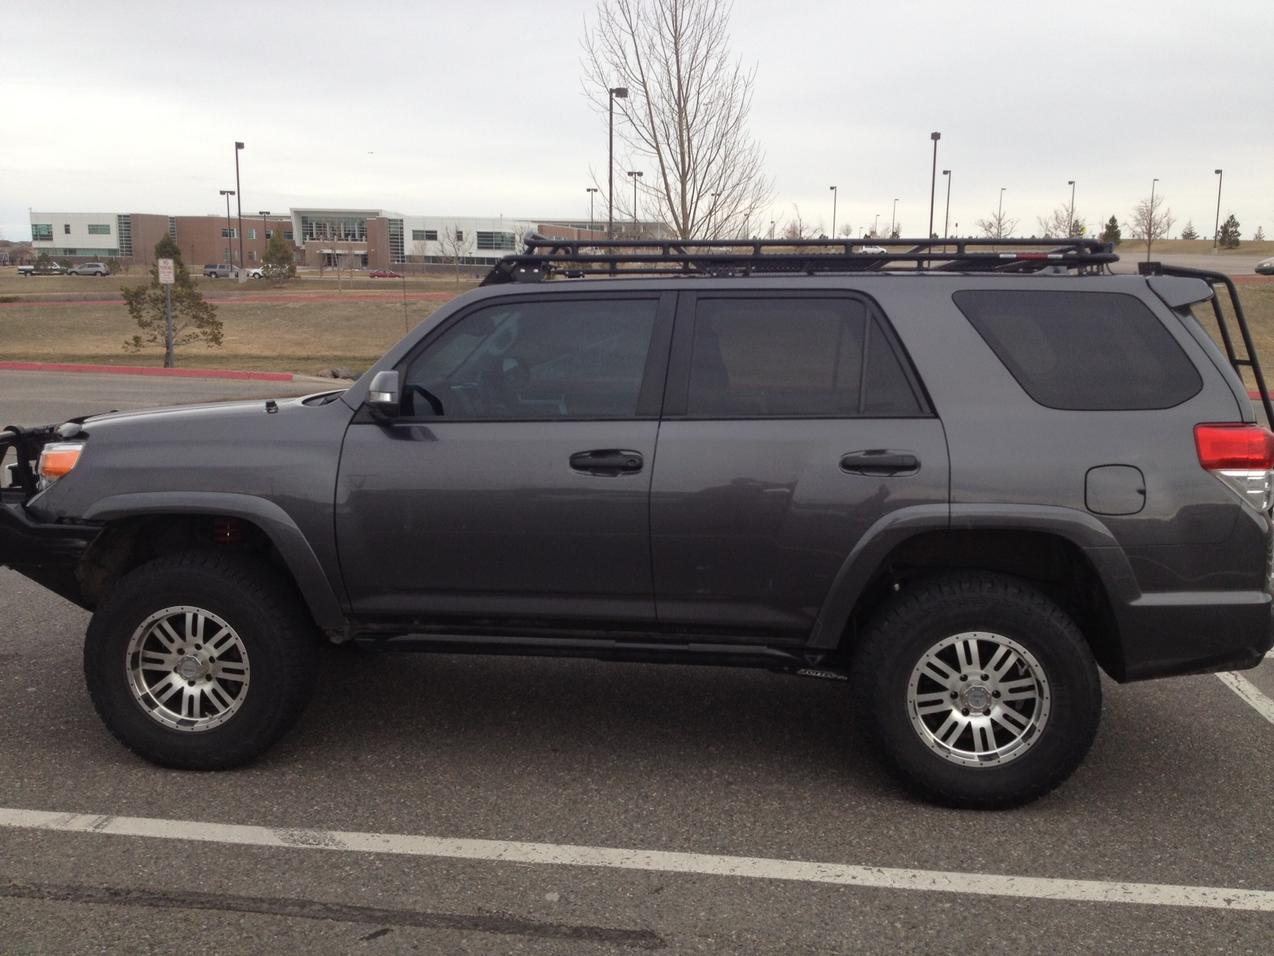 Toyota Cedar Rapids >> For Sale: 2010 4Runner w/ mods with 53,000 miles - Toyota 4Runner Forum - Largest 4Runner Forum